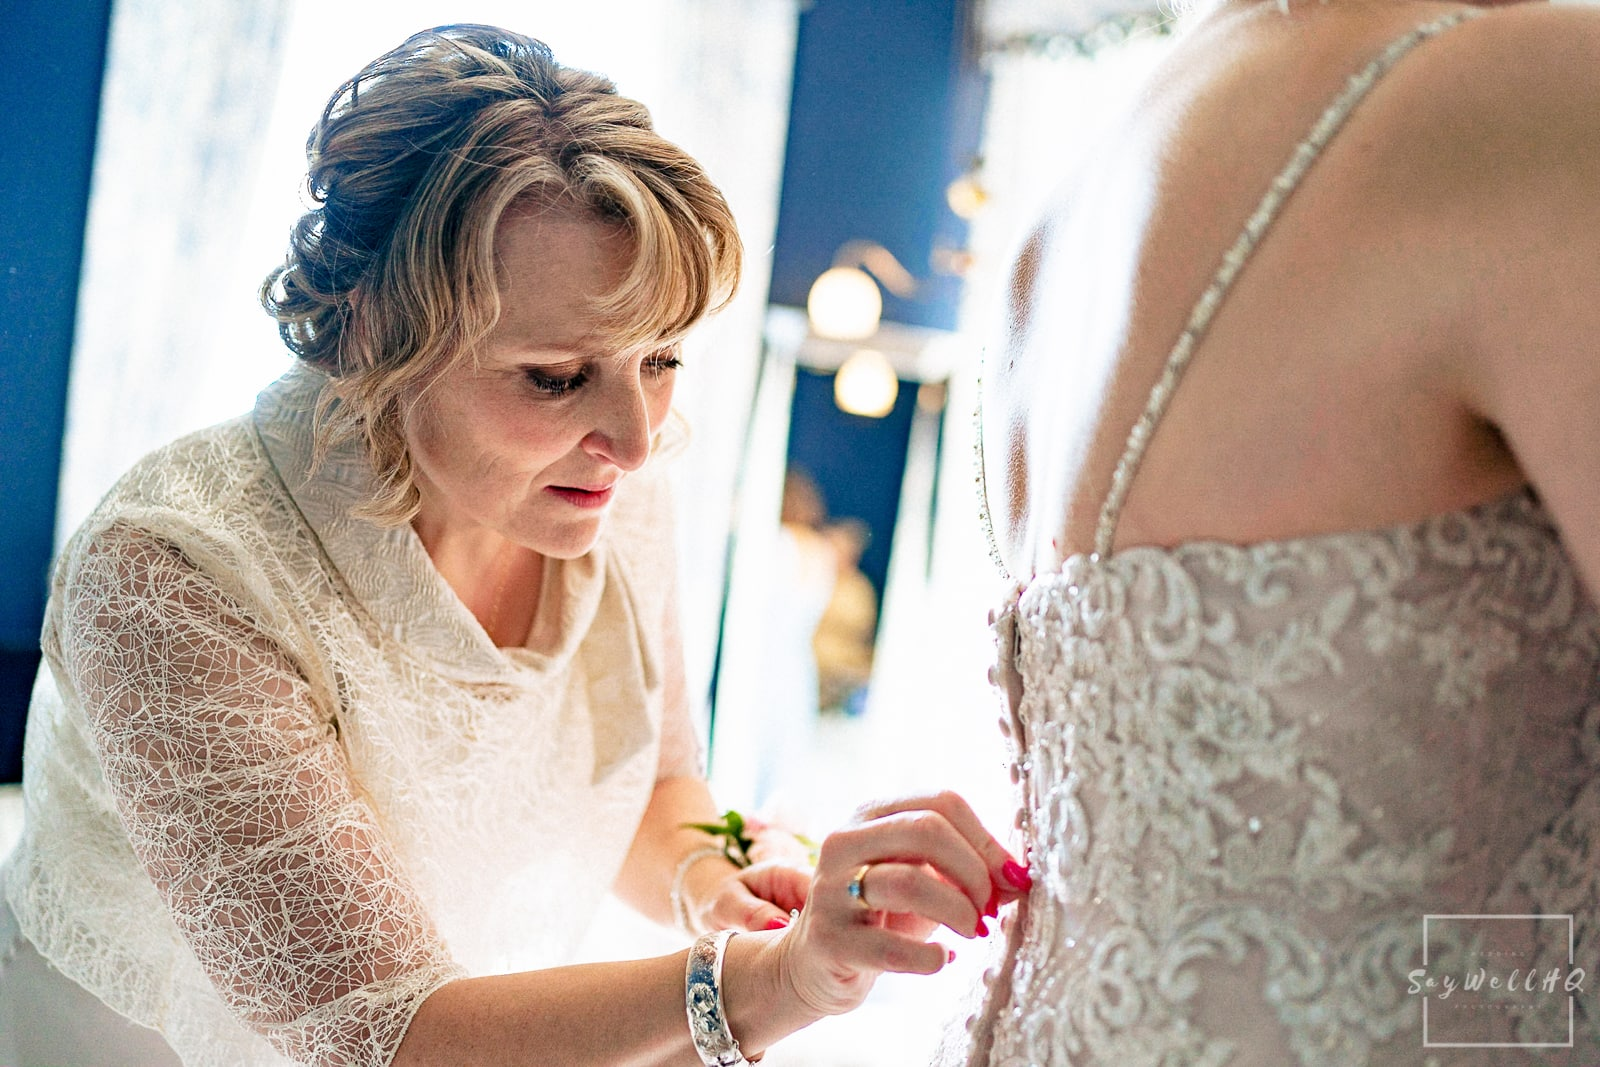 Prestwold Hall Wedding Photography - Bride getting in and wearing her wedding dress